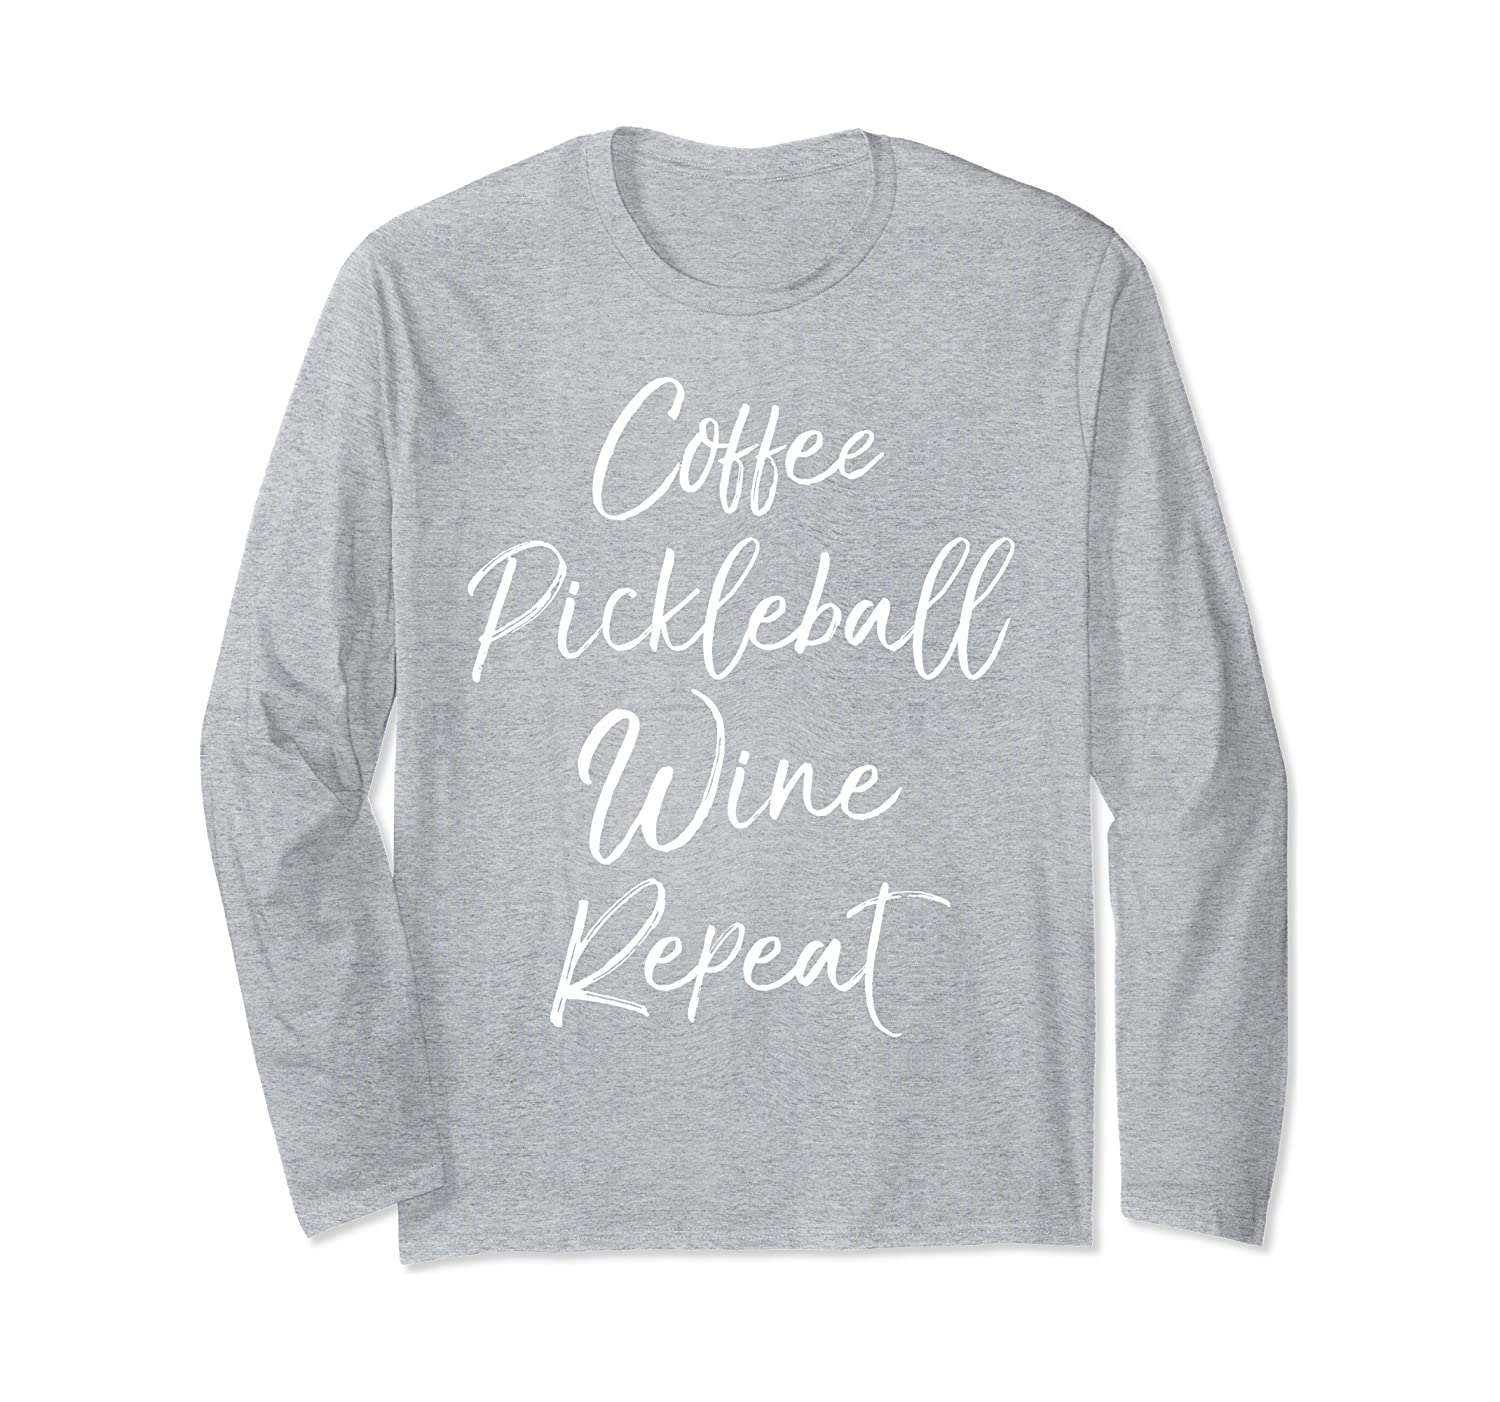 Funny Pickle Ball Quote Womens Coffee Pickleball Wine Repeat Long Sleeve T-Shirt